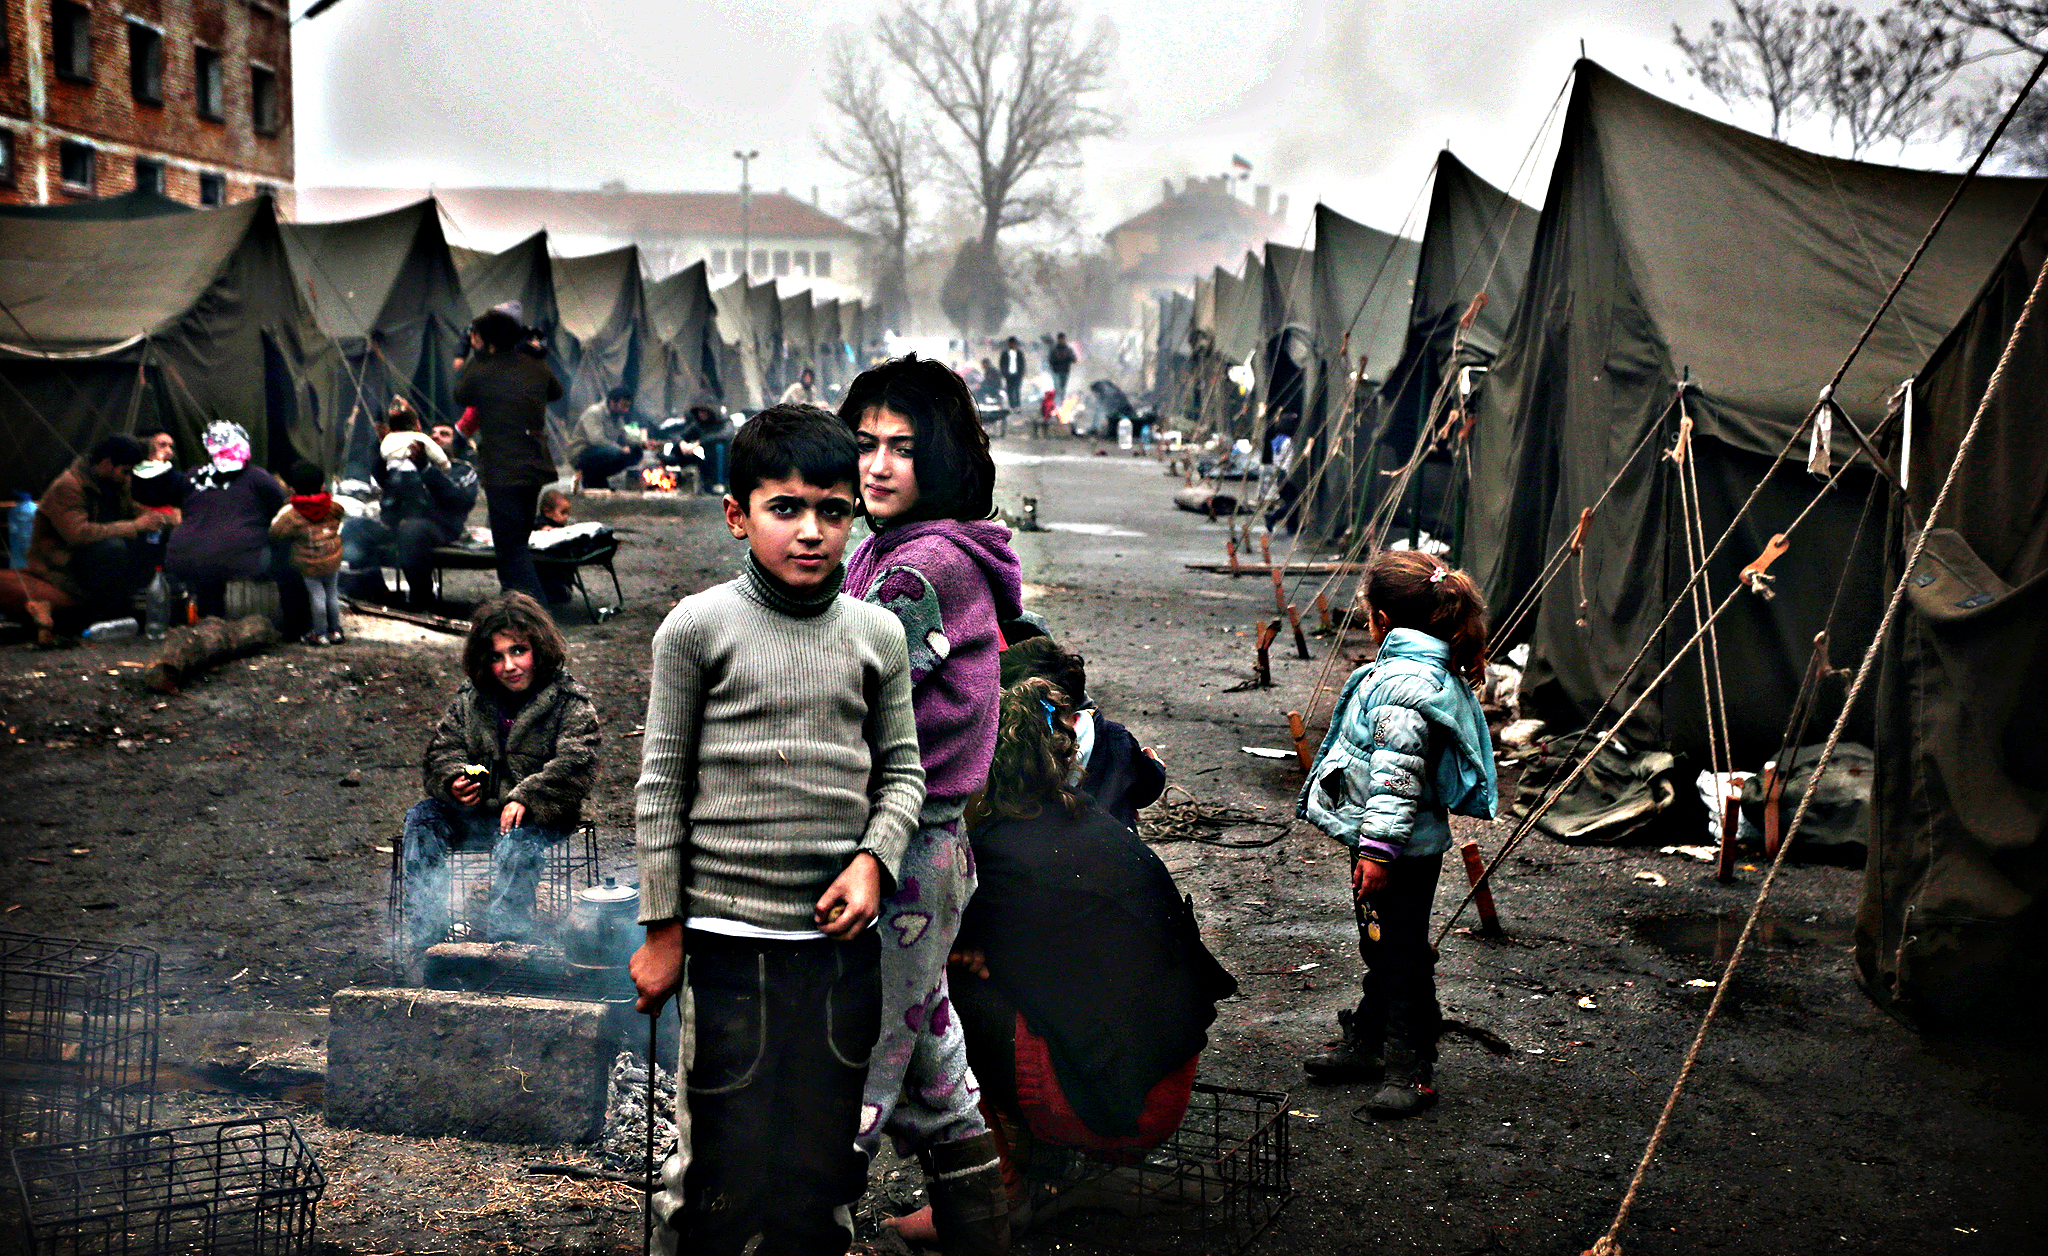 Bulgarian government plans to disperse 2000 refugees throughout country